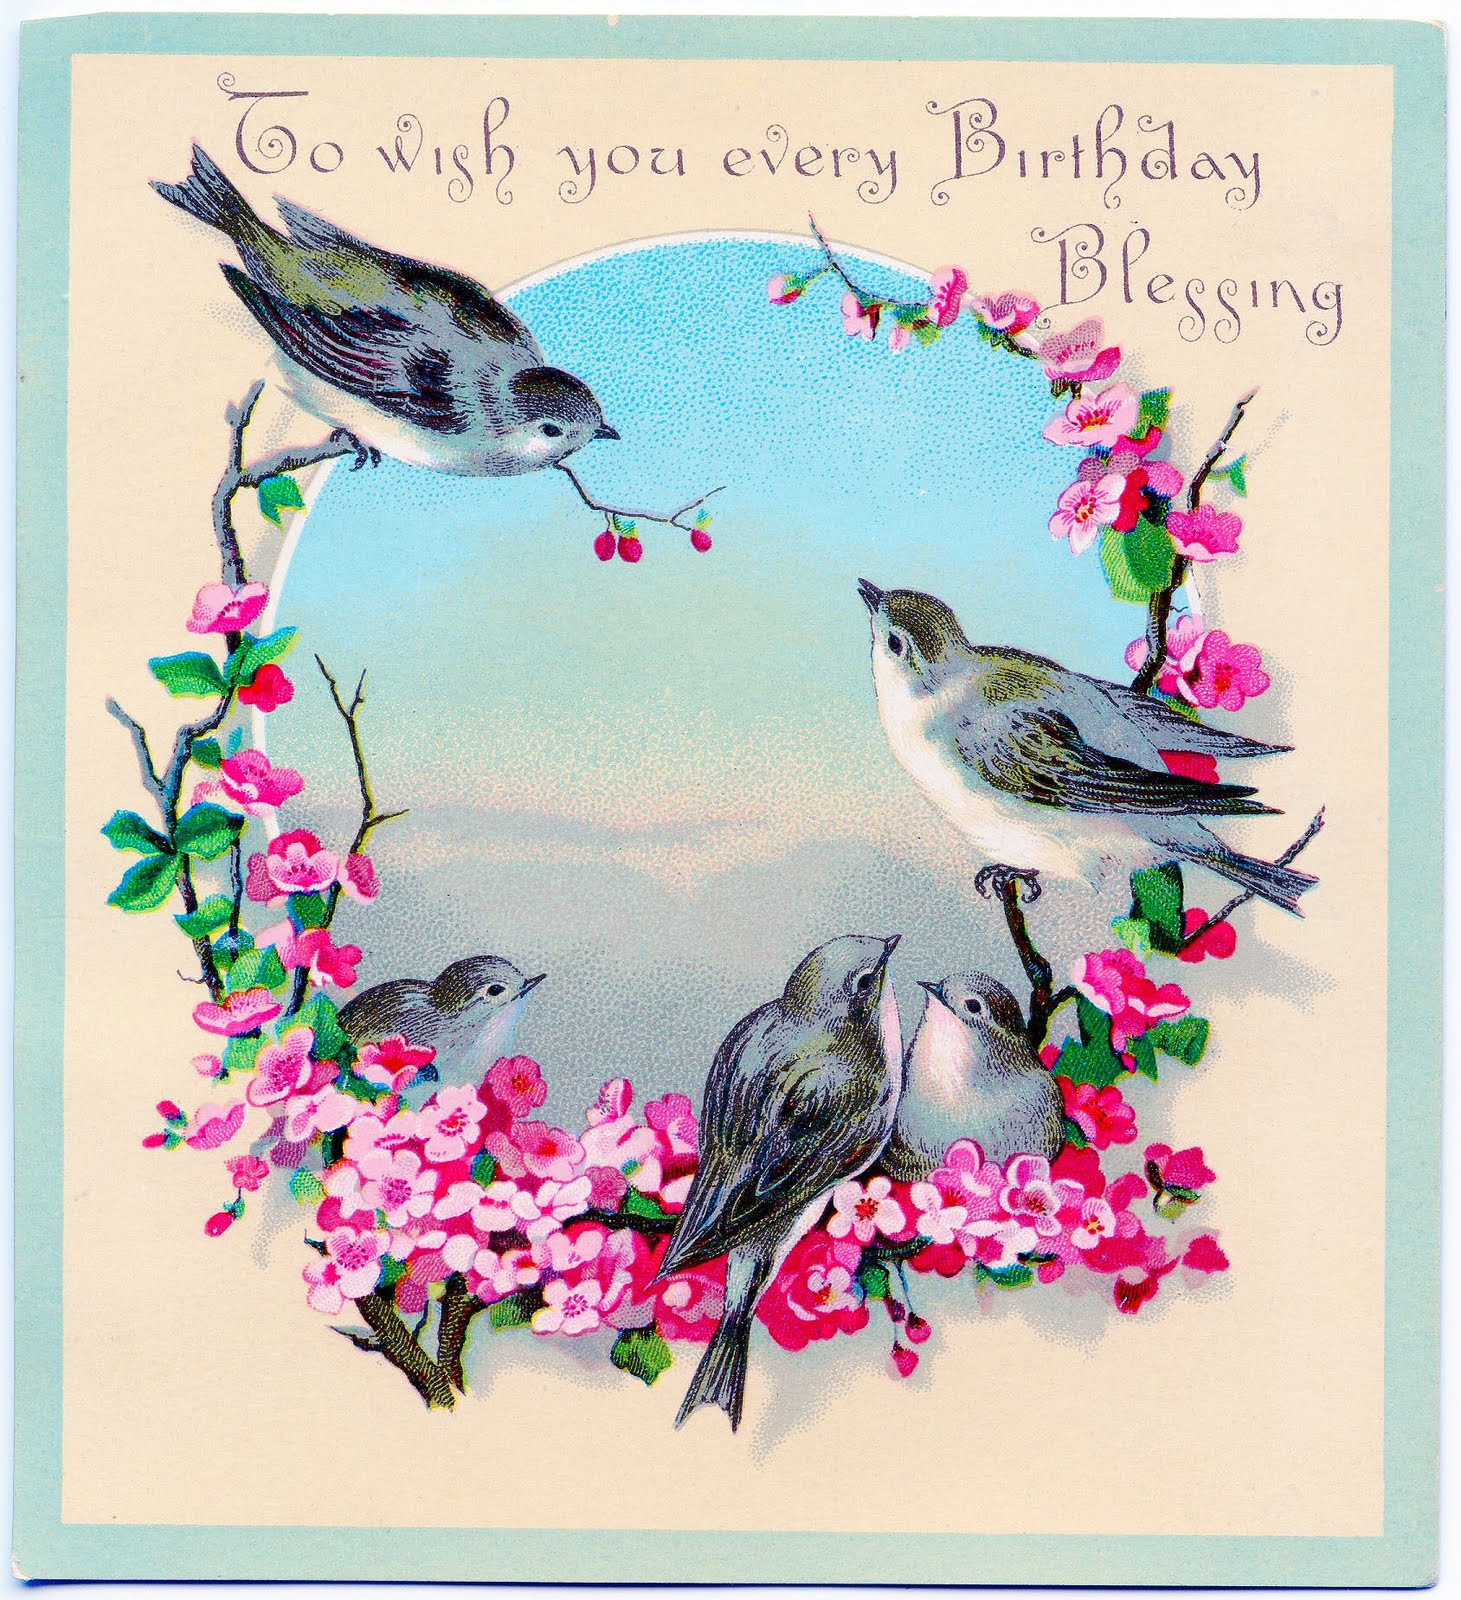 religious happy birthday clipart ; christian-happy-birthday-wishes-new-free-bird-birthday-cliparts-hanslodge-clip-art-collection-of-christian-happy-birthday-wishes